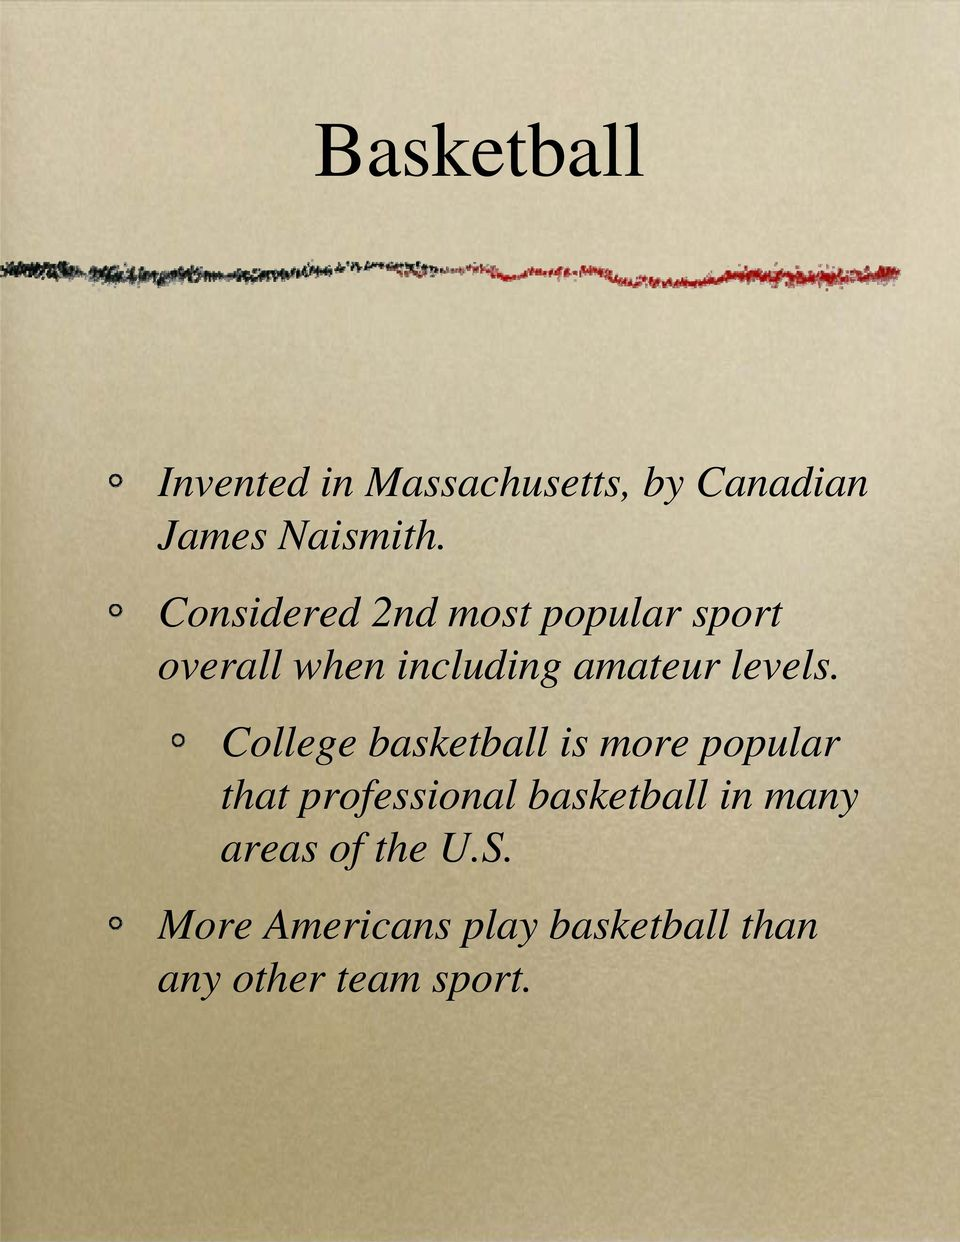 College basketball is more popular that professional basketball in many